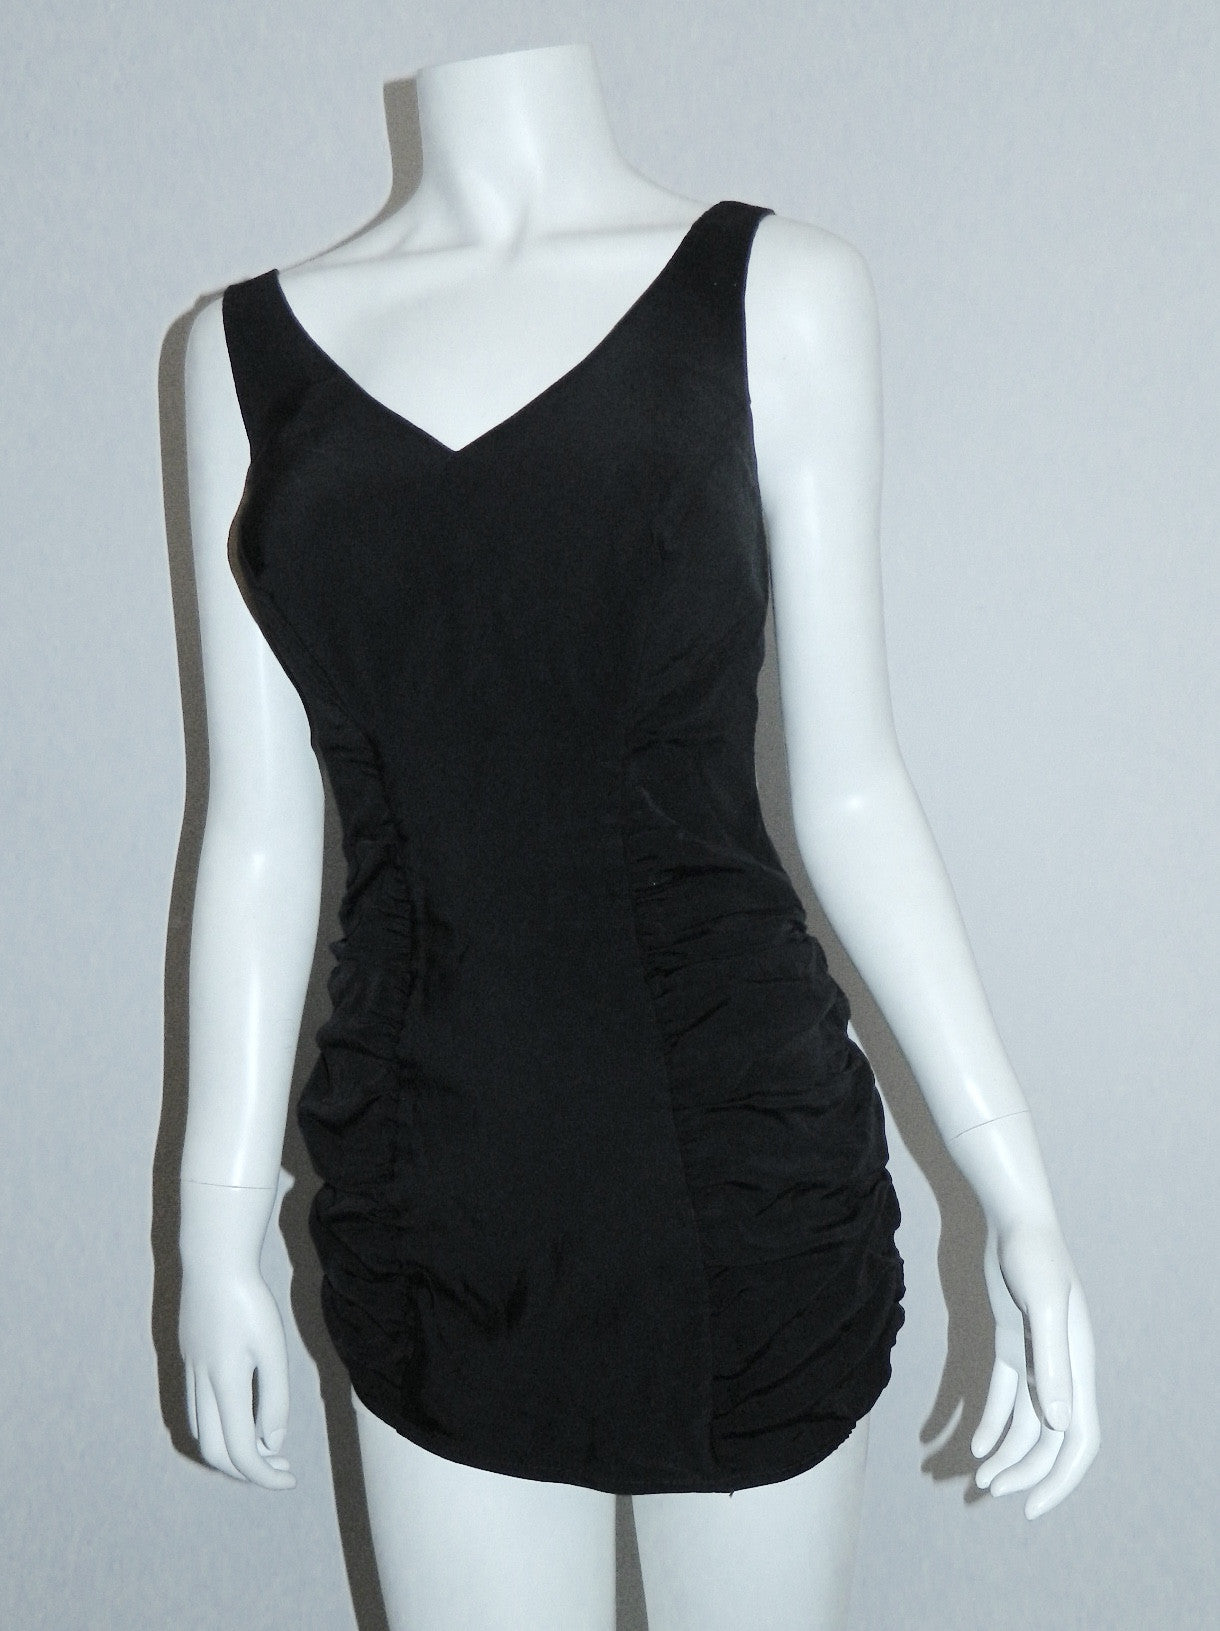 vintage 1950s black bathing suit / zip back / bullet bra / pin up VLV S - M